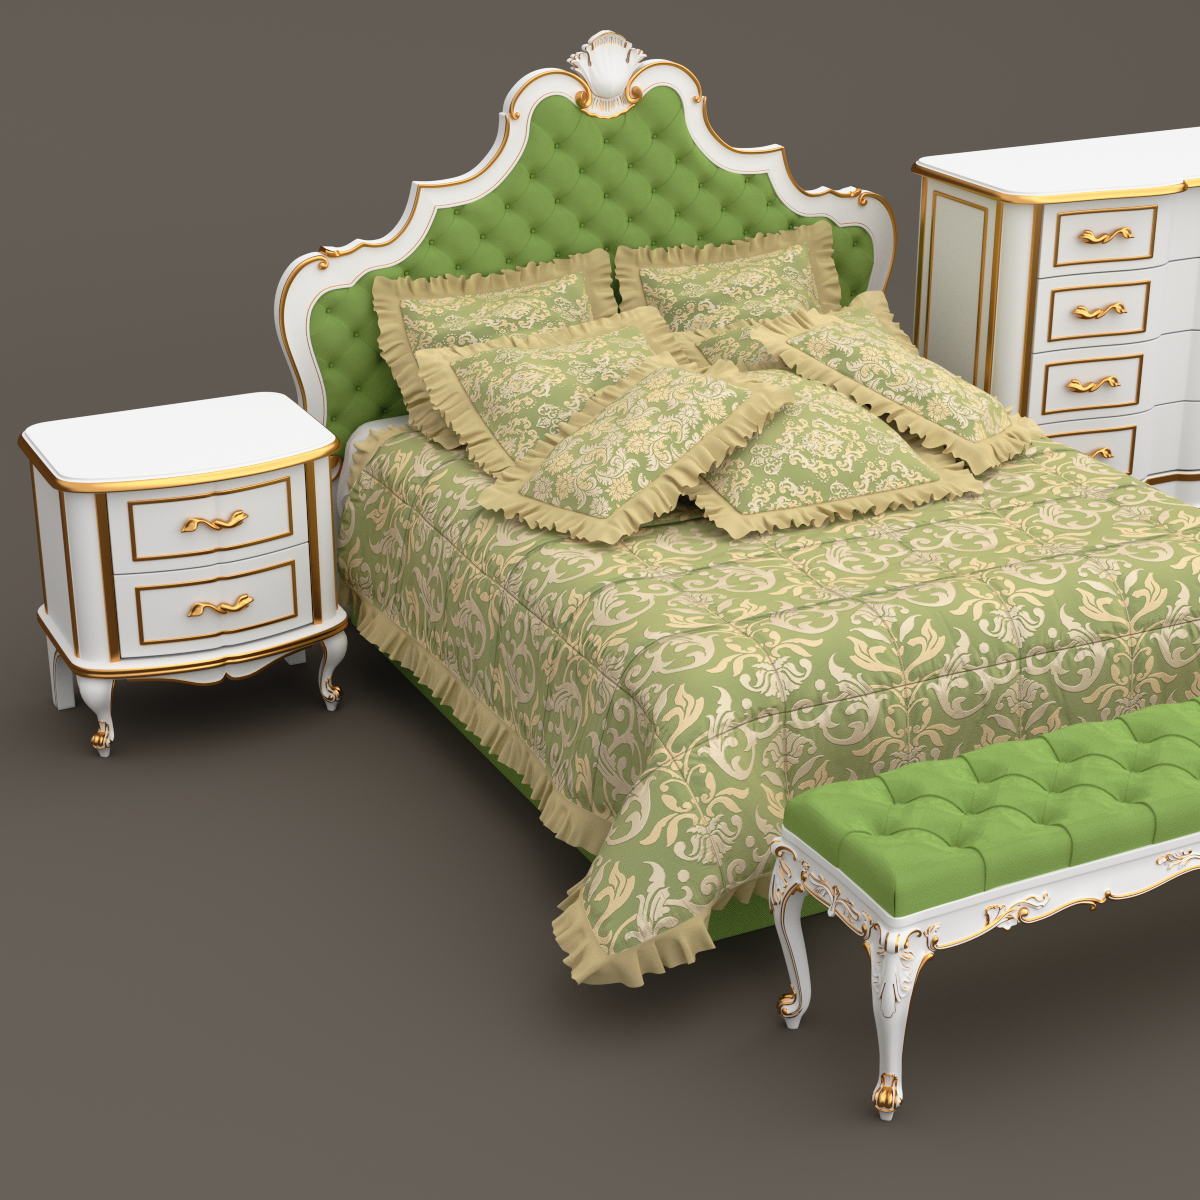 Baroque Bedroom set B